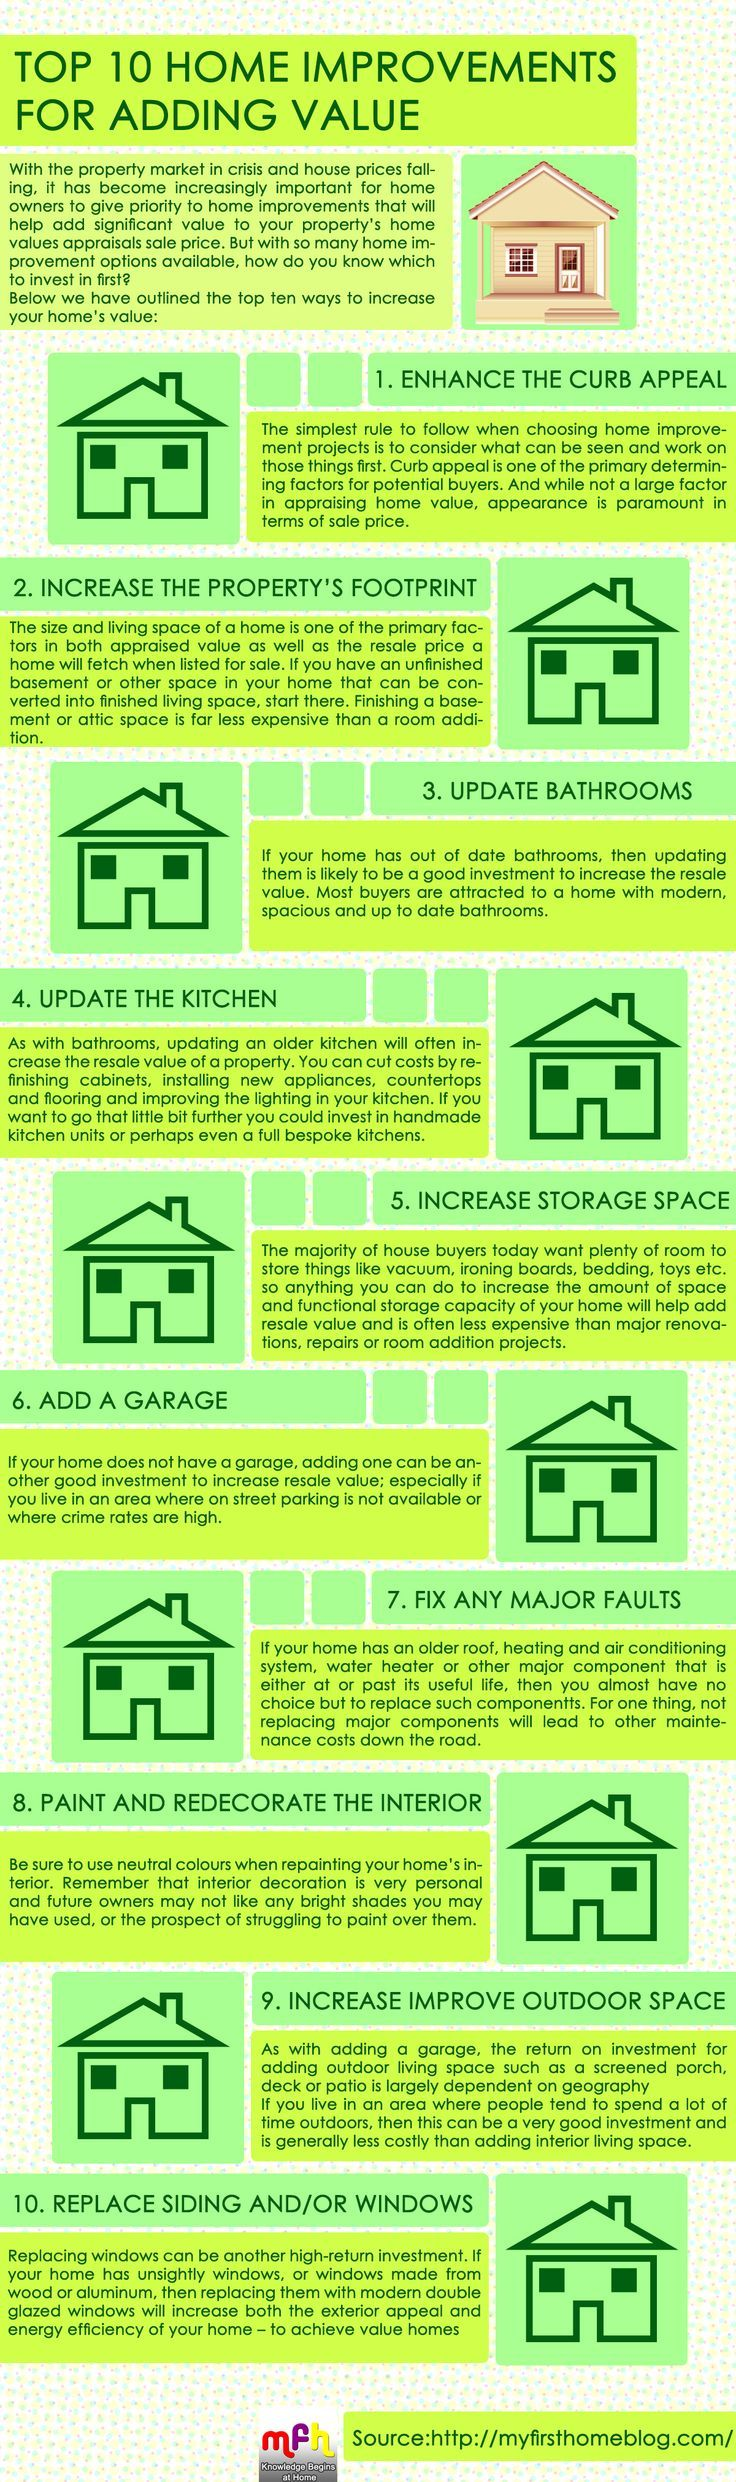 Top 10 Home Improvements For Adding Value With the property market in crisis and house prices falling, it has become increasingly important for home owners to give priority to home improvements that will help add significant value to your property's home values appraisals sale price. But with so many home improvement options available, how do you know which to invest in first?